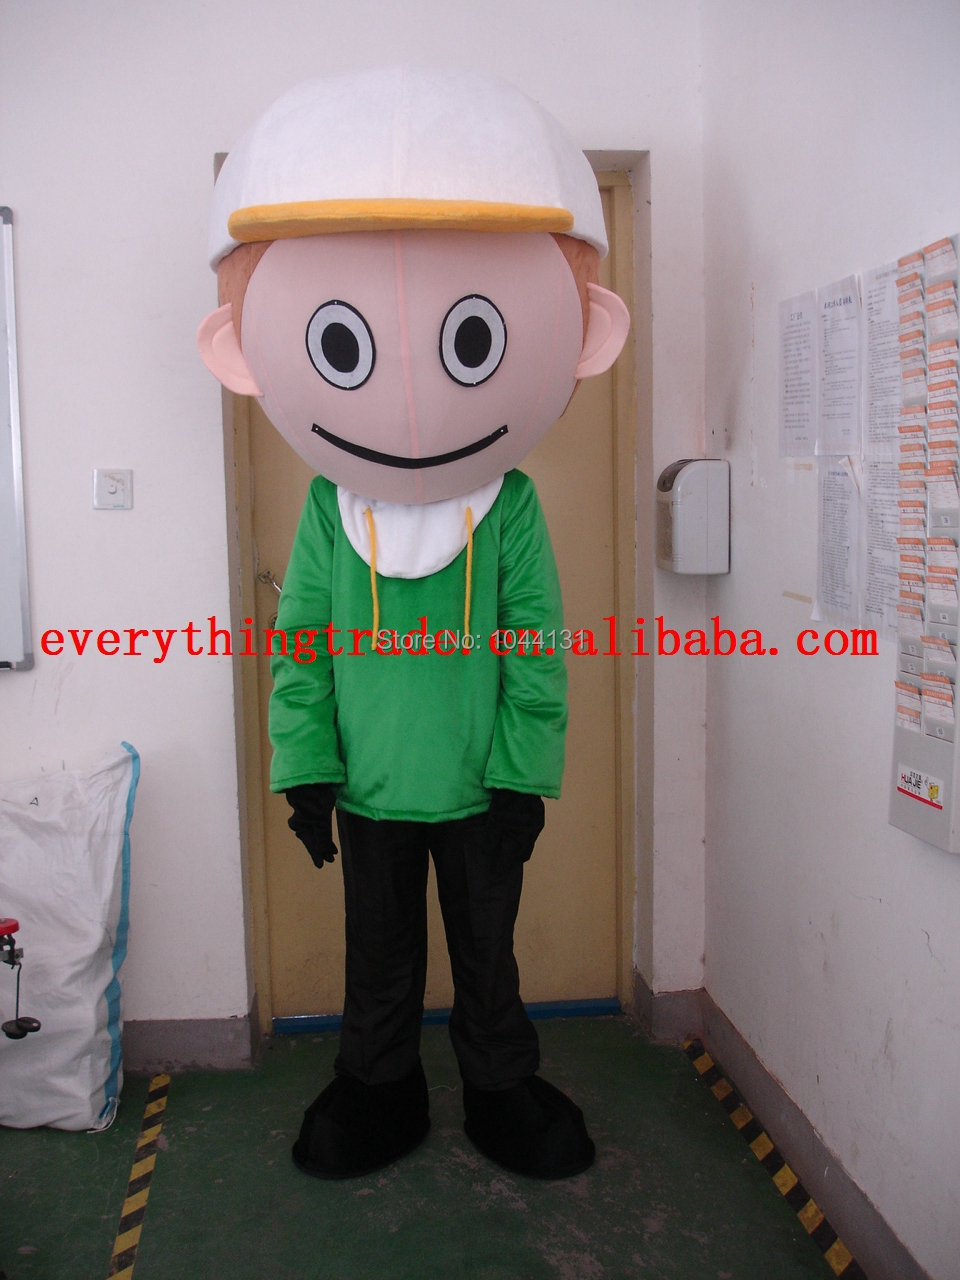 2014 Hot Sale green boy fancy Outfit Mascot Costume Cartoon Character Party Dress Costume(China (Mainland))